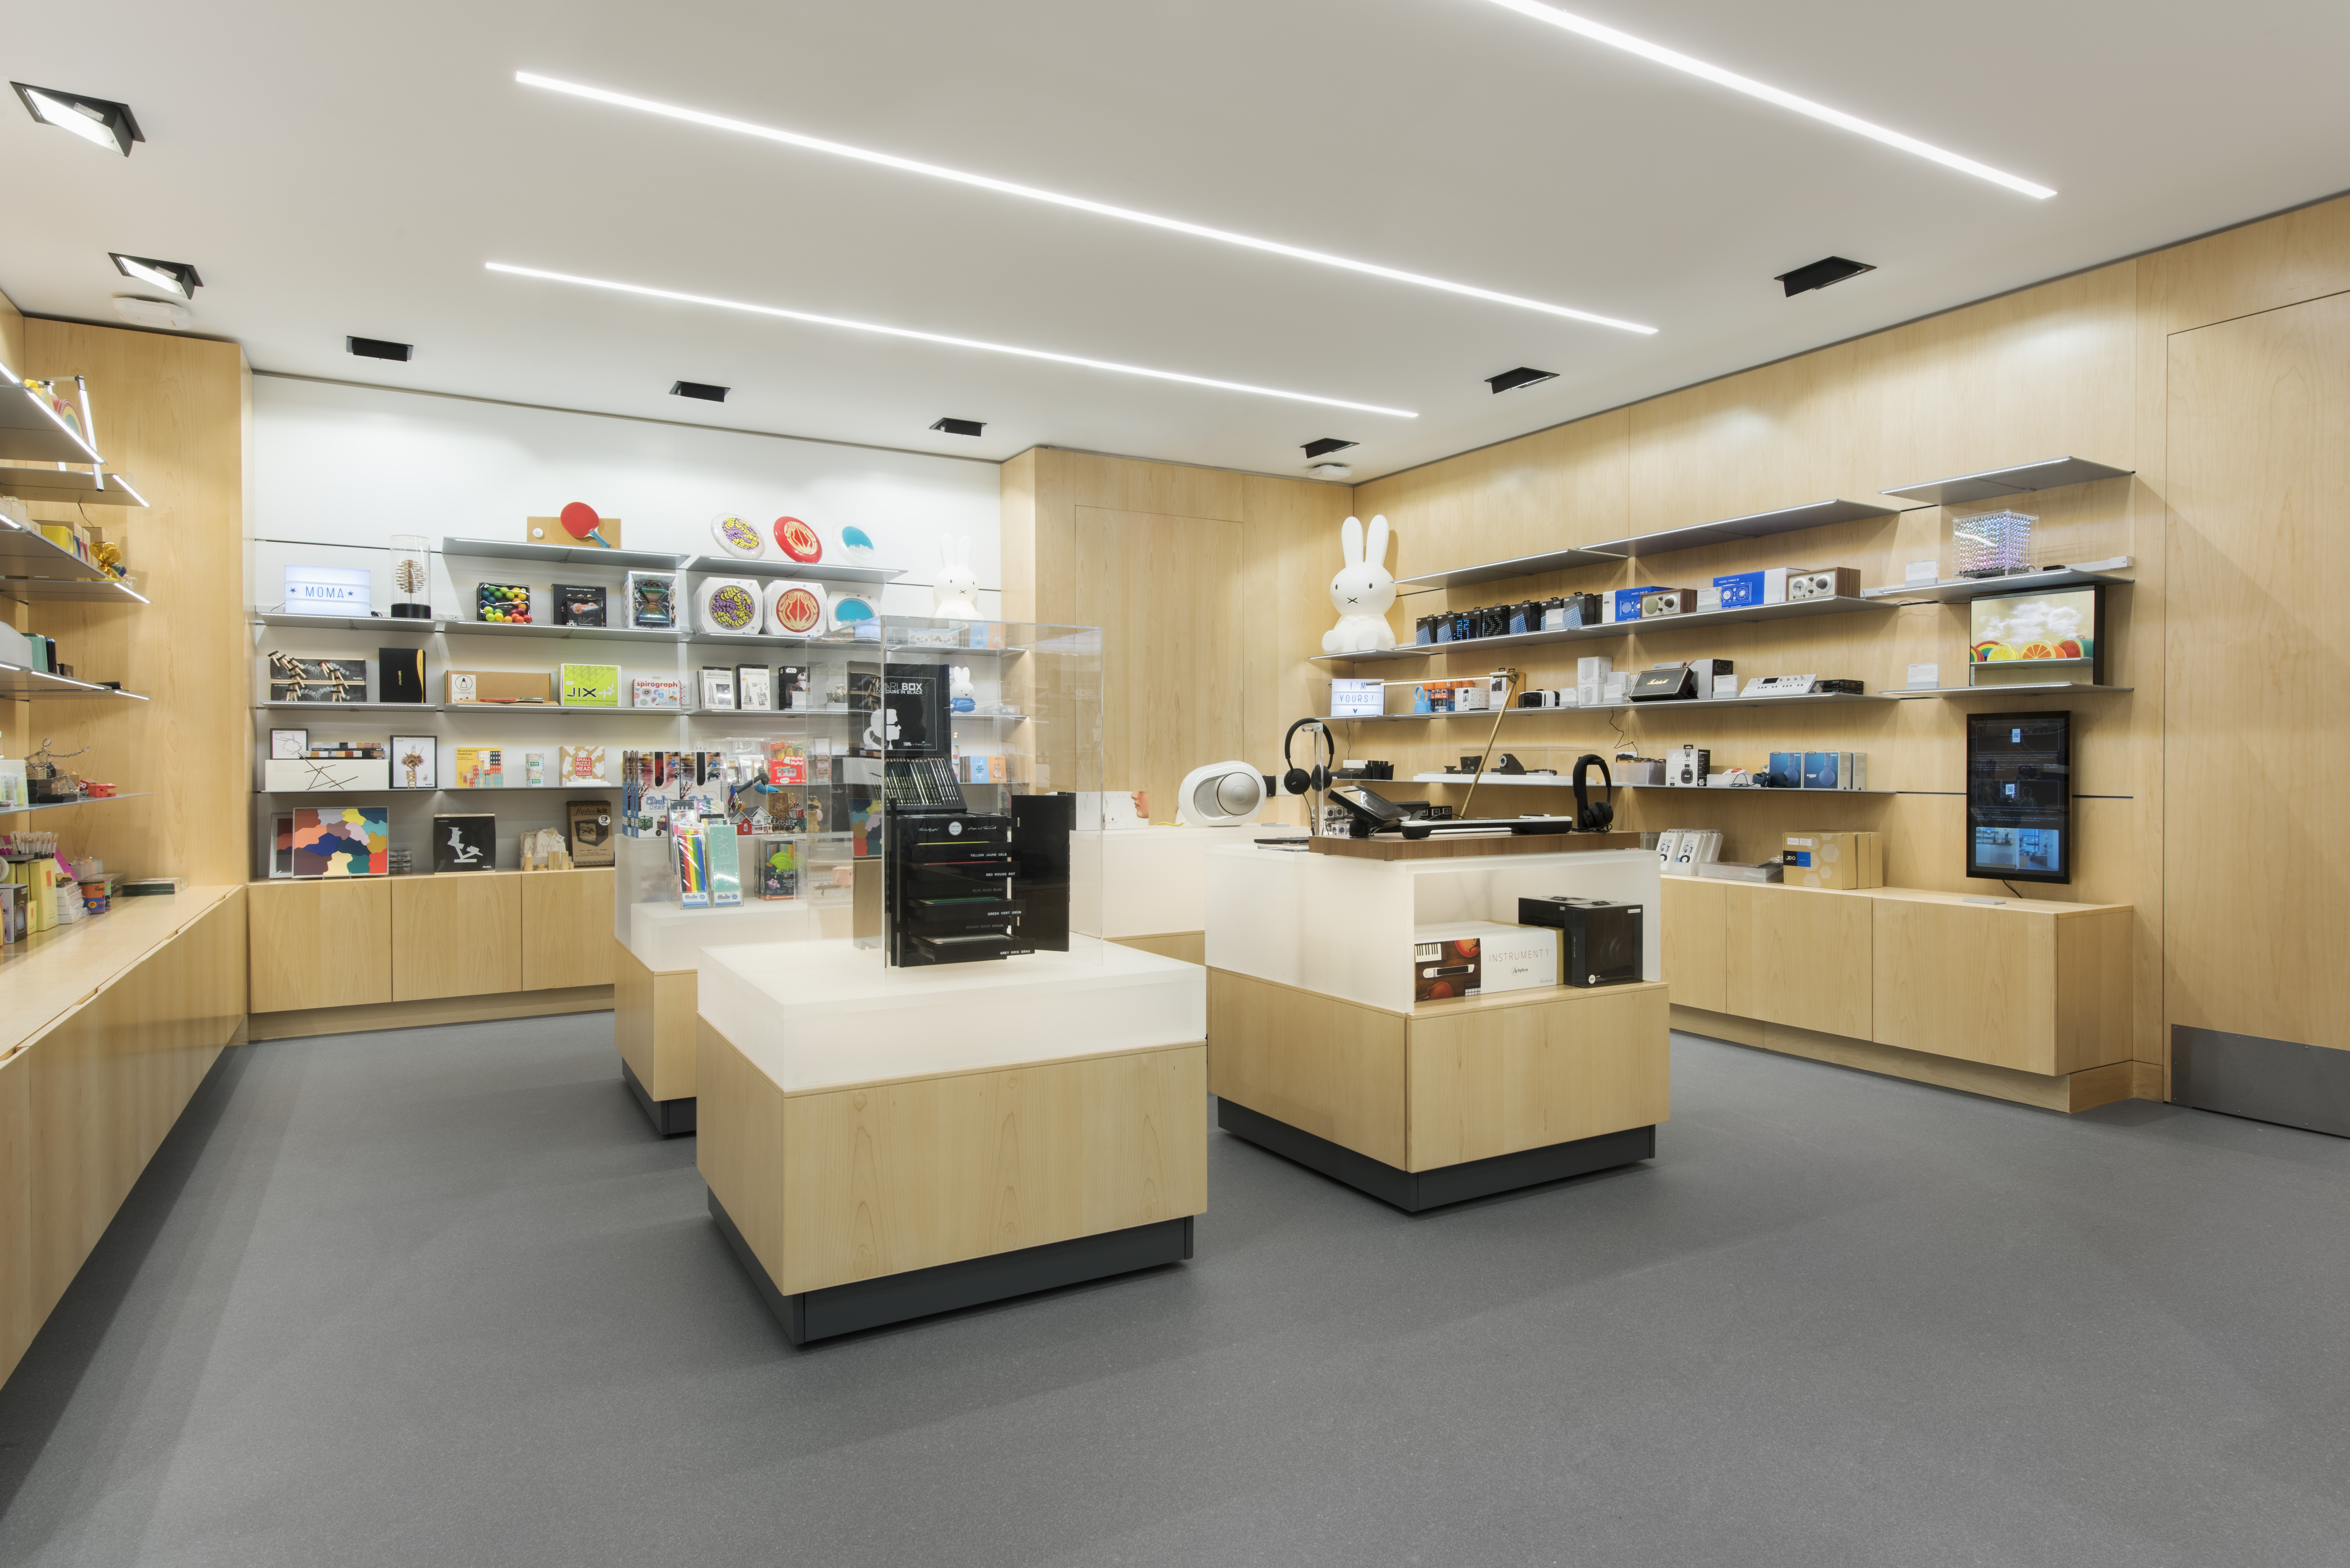 Moma Shop Moma Design Store Overhauled By Lumsden Design | Design Week